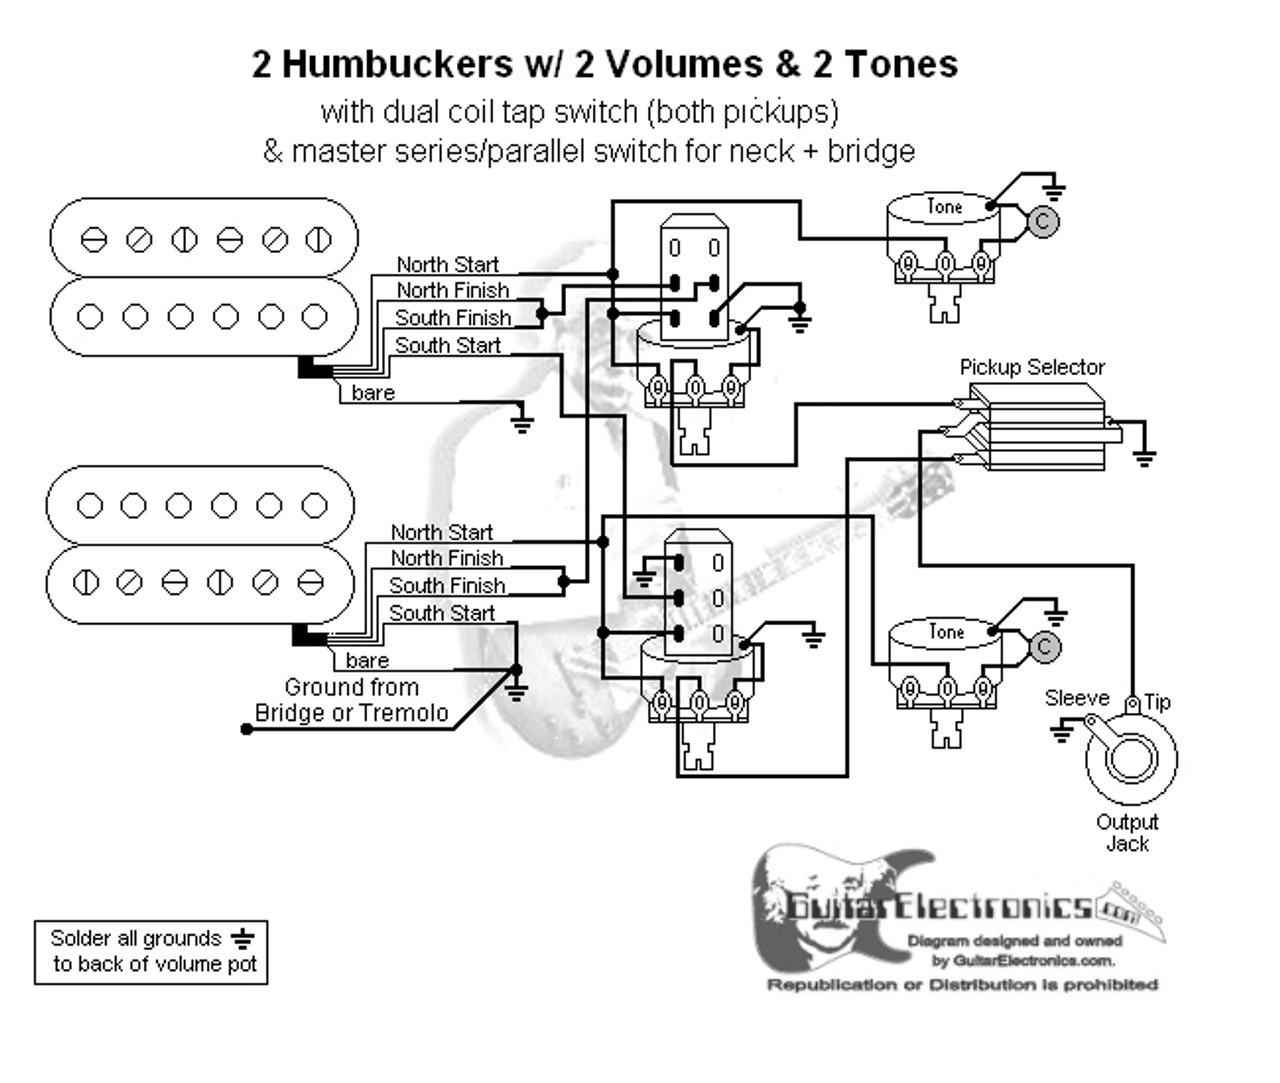 home 3 pickup les paul wiring diagram 2 hbs 3 way toggle 2 vol 2 tones coil tap u0026 series parallel [ 1280 x 1083 Pixel ]